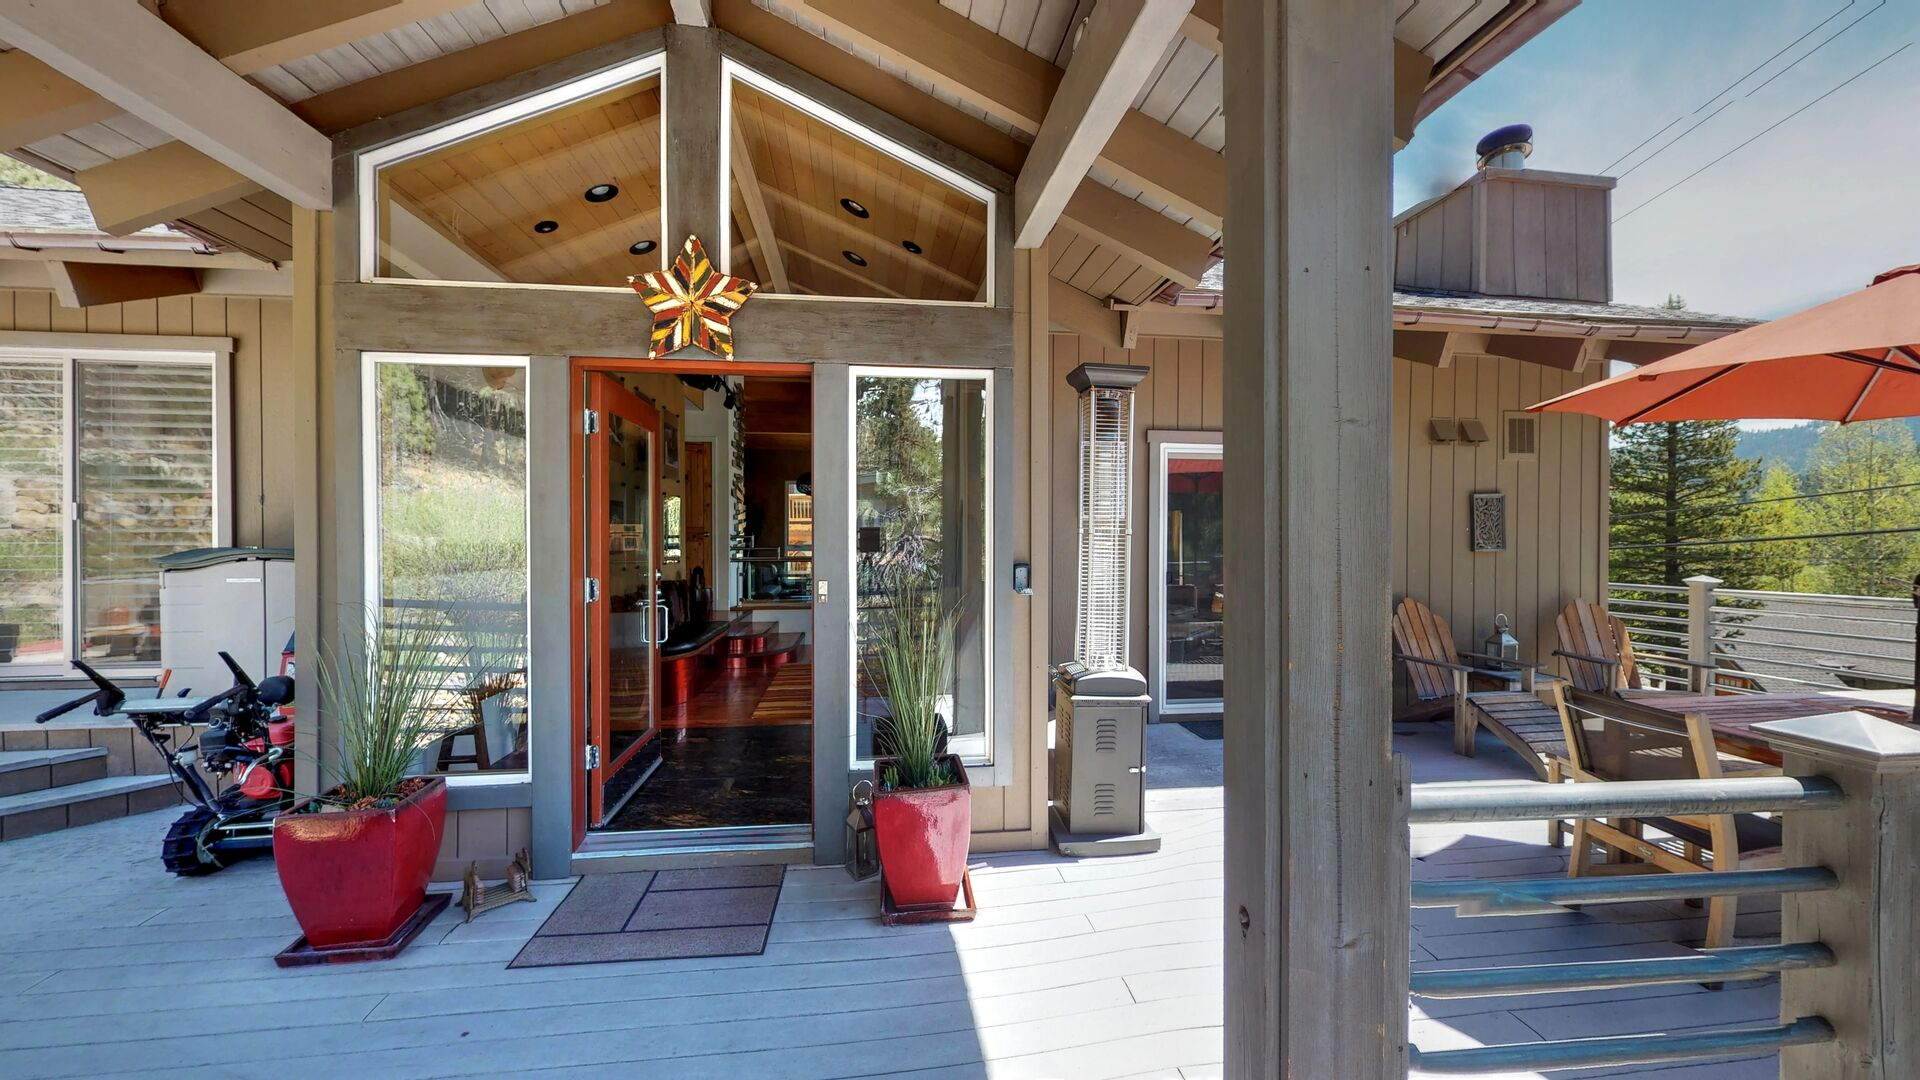 Patio and seating areas at this squaw valley rental